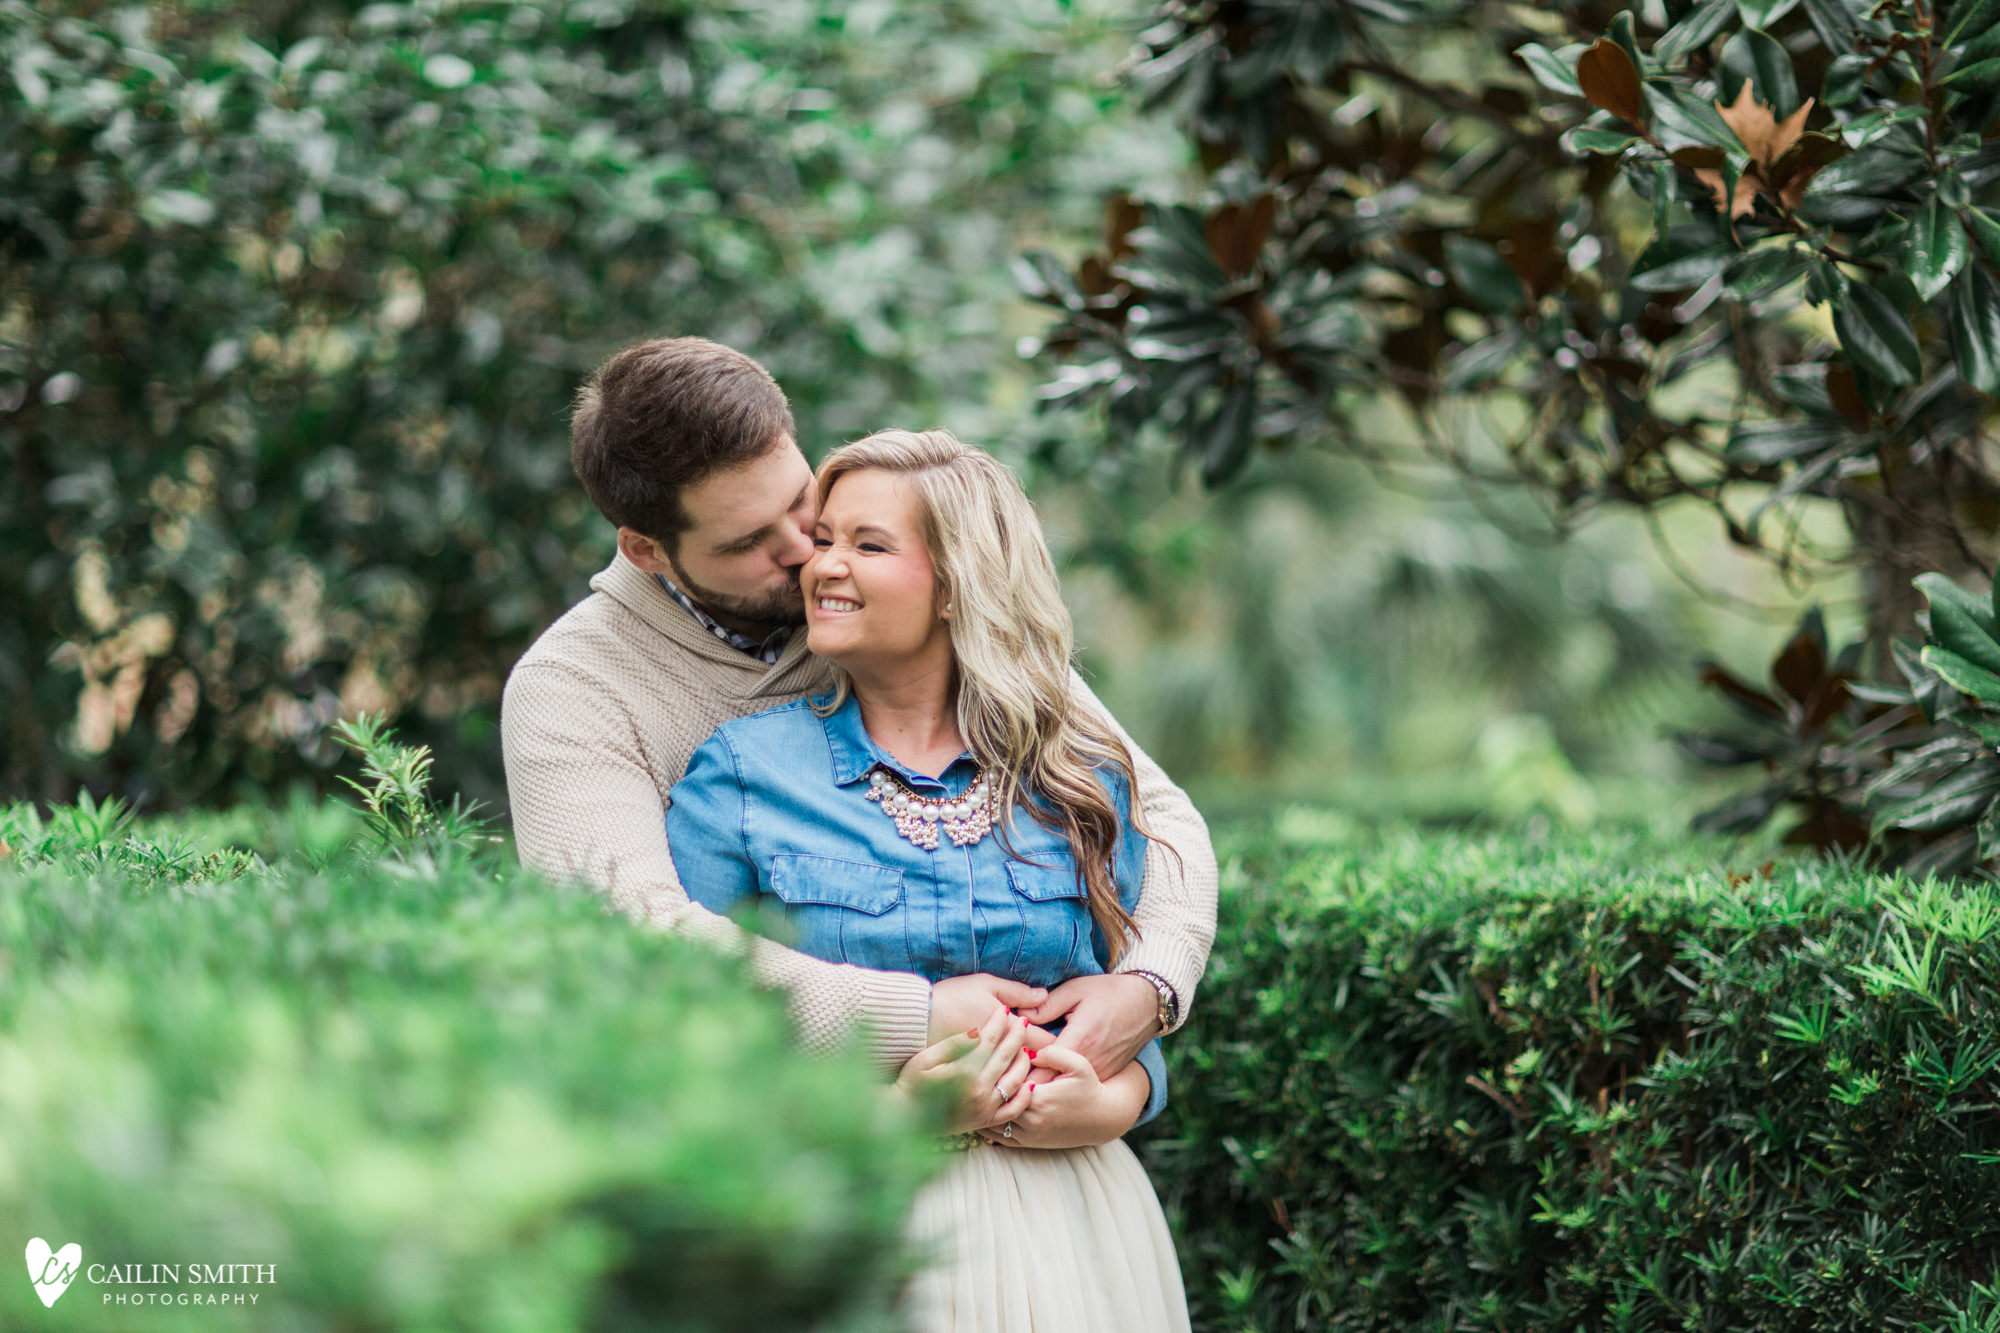 Stephanie_Tyler_Jacksonville_Zoo_Engagement_Photography_013.jpg